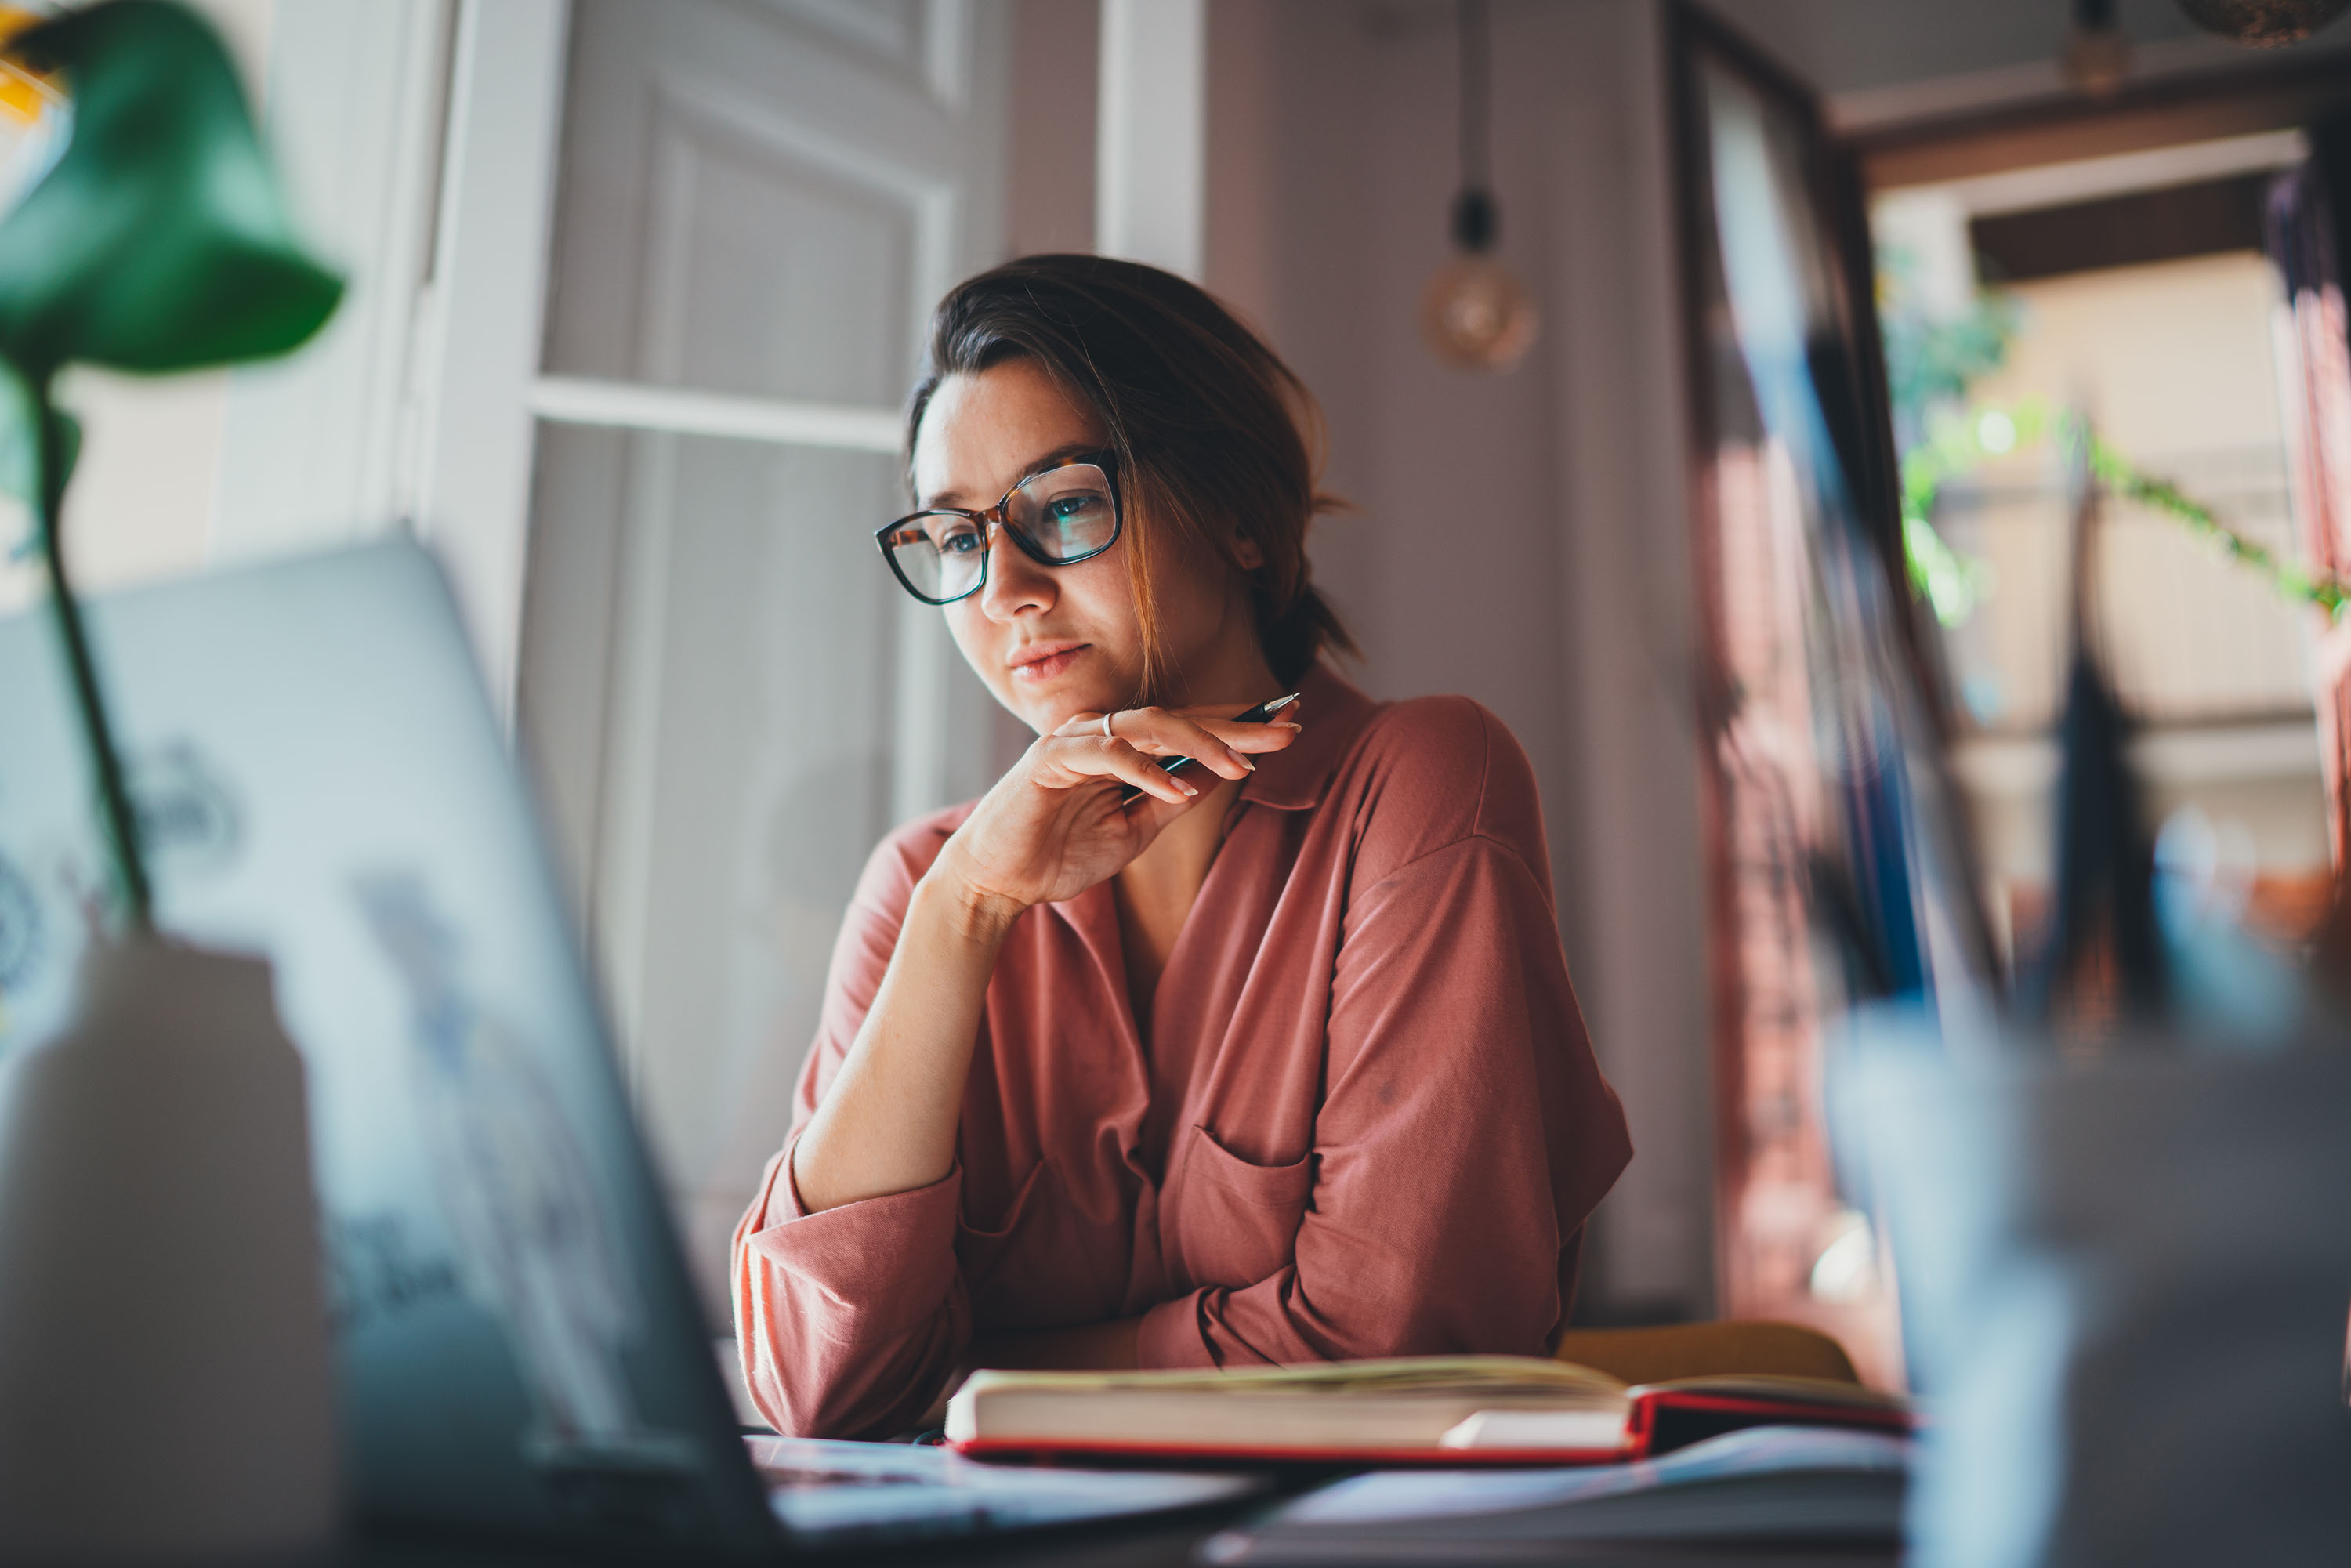 Lady with trendy glasses sits at her home workspace with a laptop.